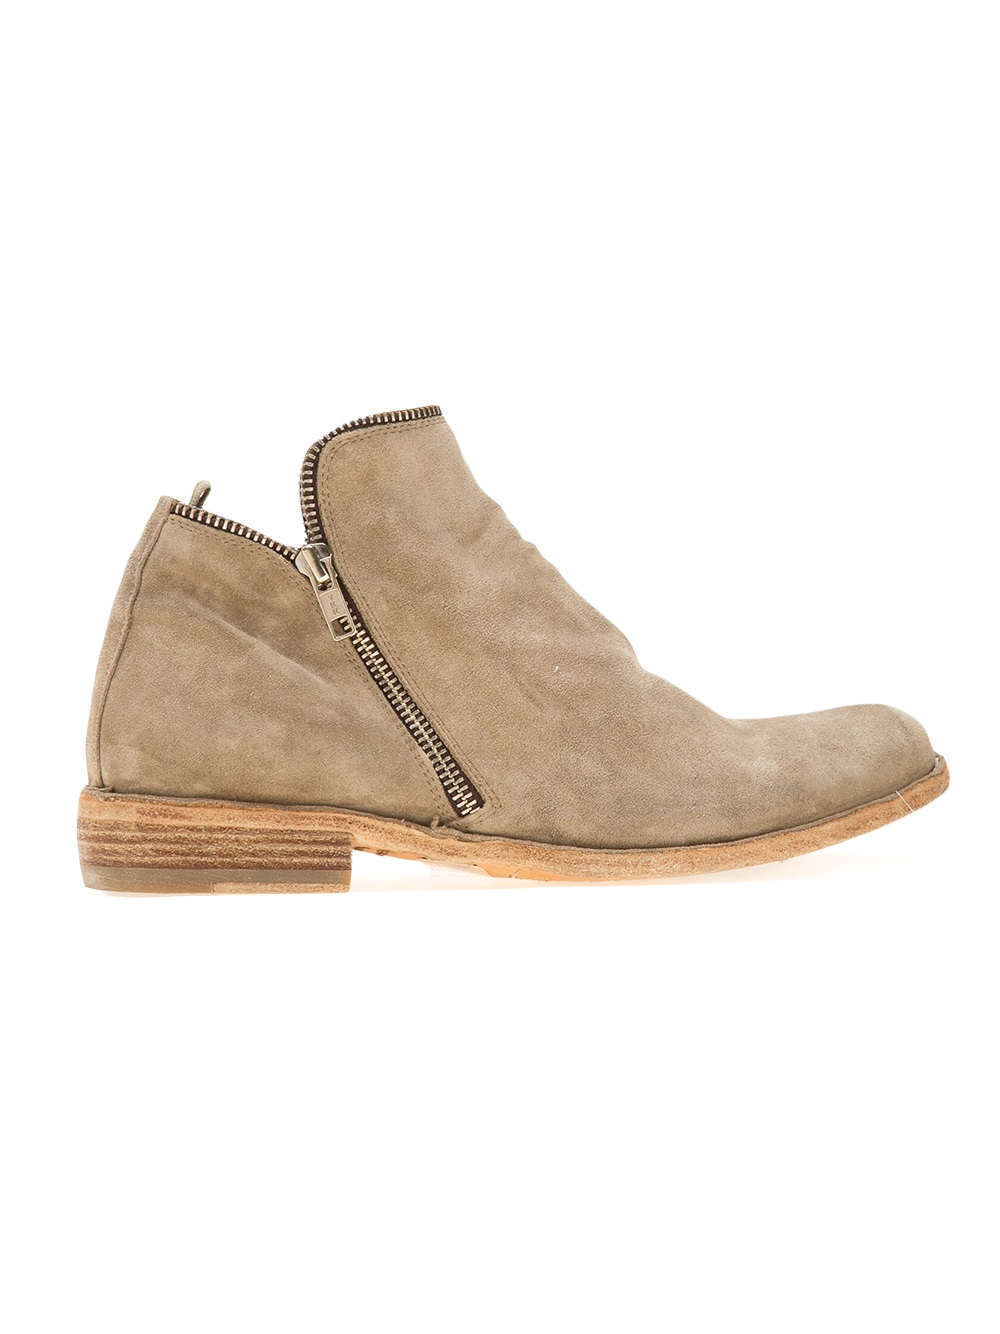 Officine Creative Zipped Boot in Natural